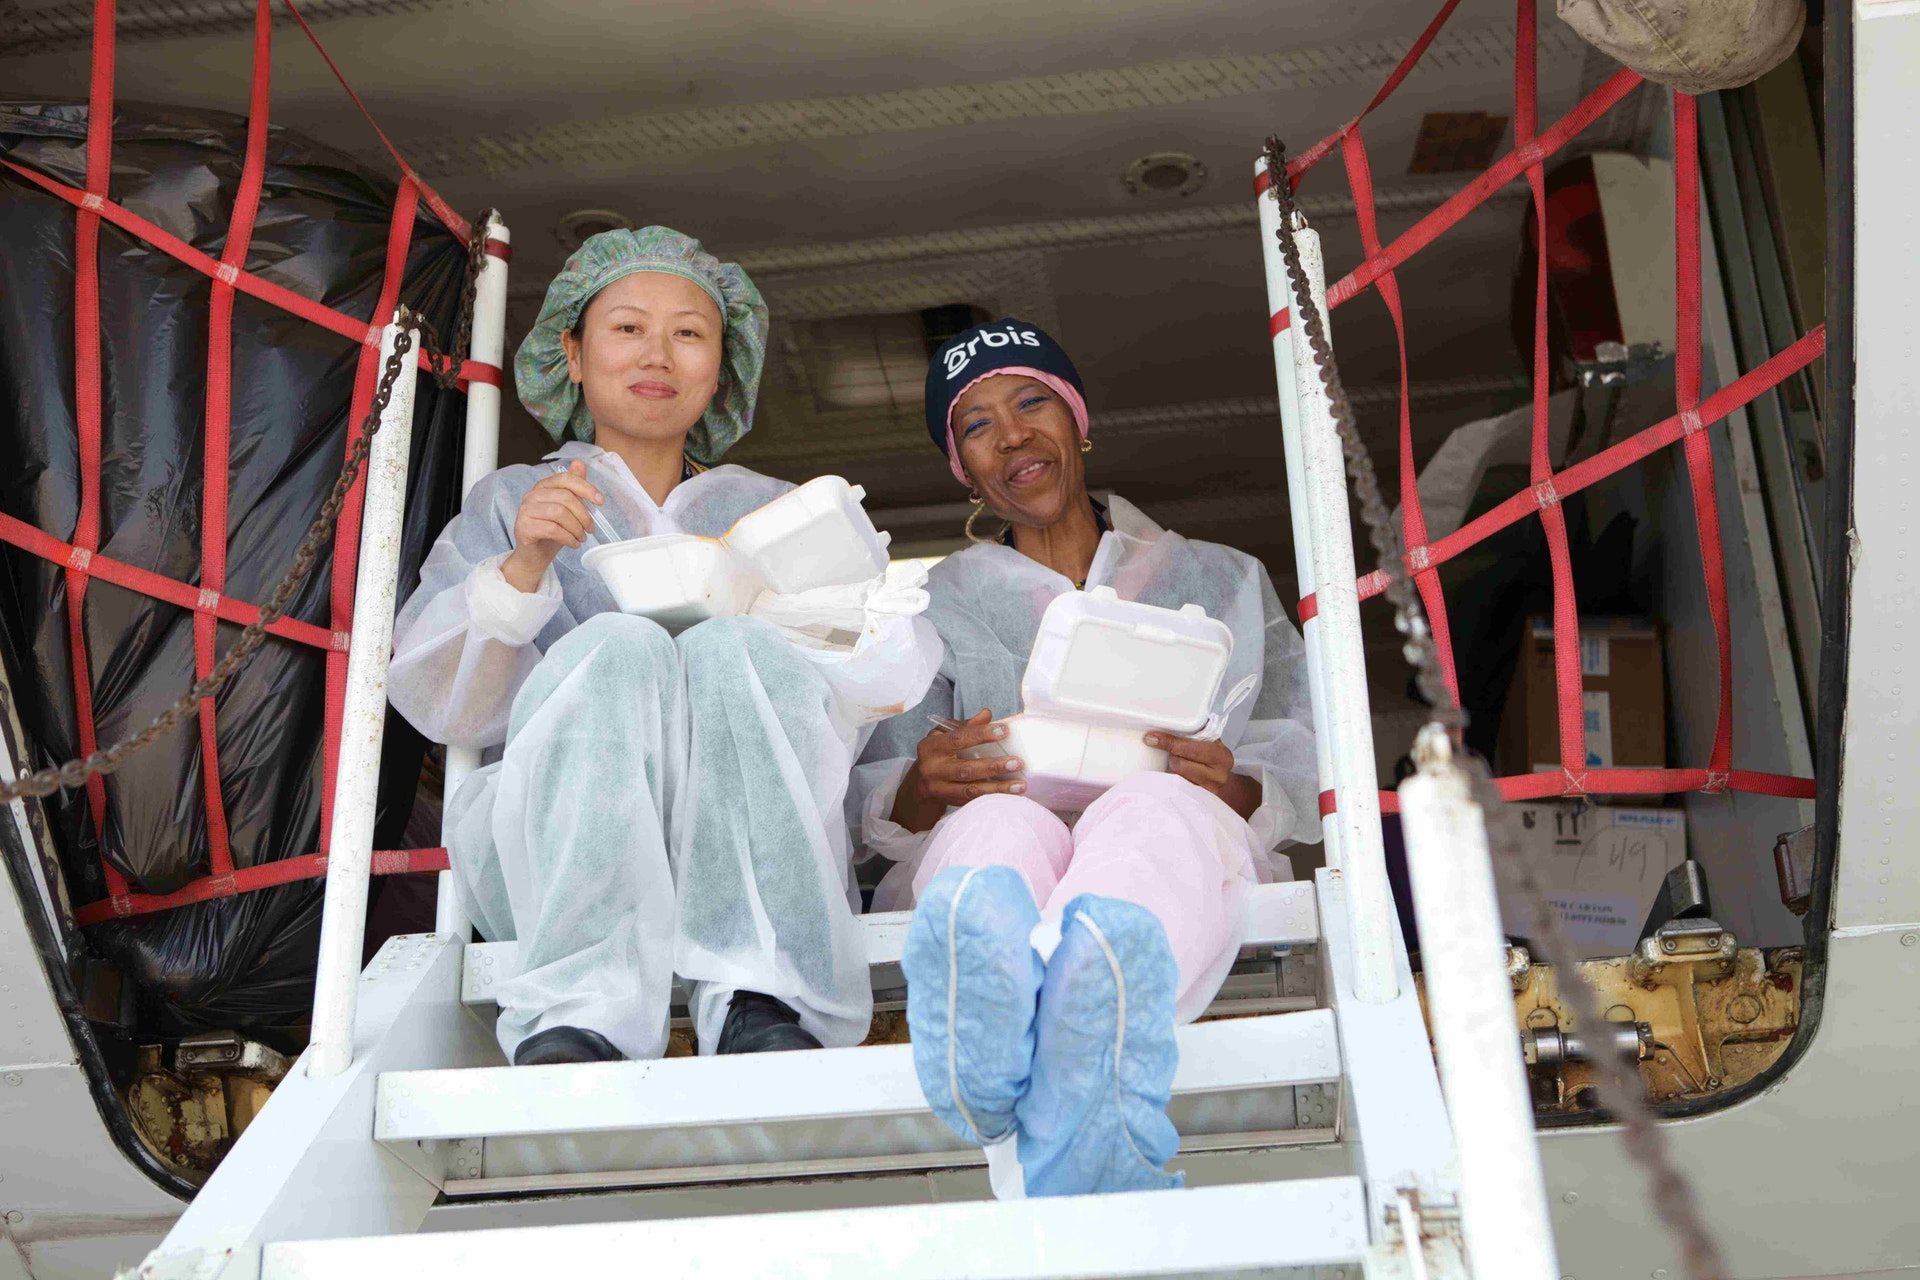 Angela Purcell, FEH head nurse and Xiao Ying Liu, FEH staff nurse enjoy their lunch break in the belly of the Flying Eye Hospital in Trujillo in 2015